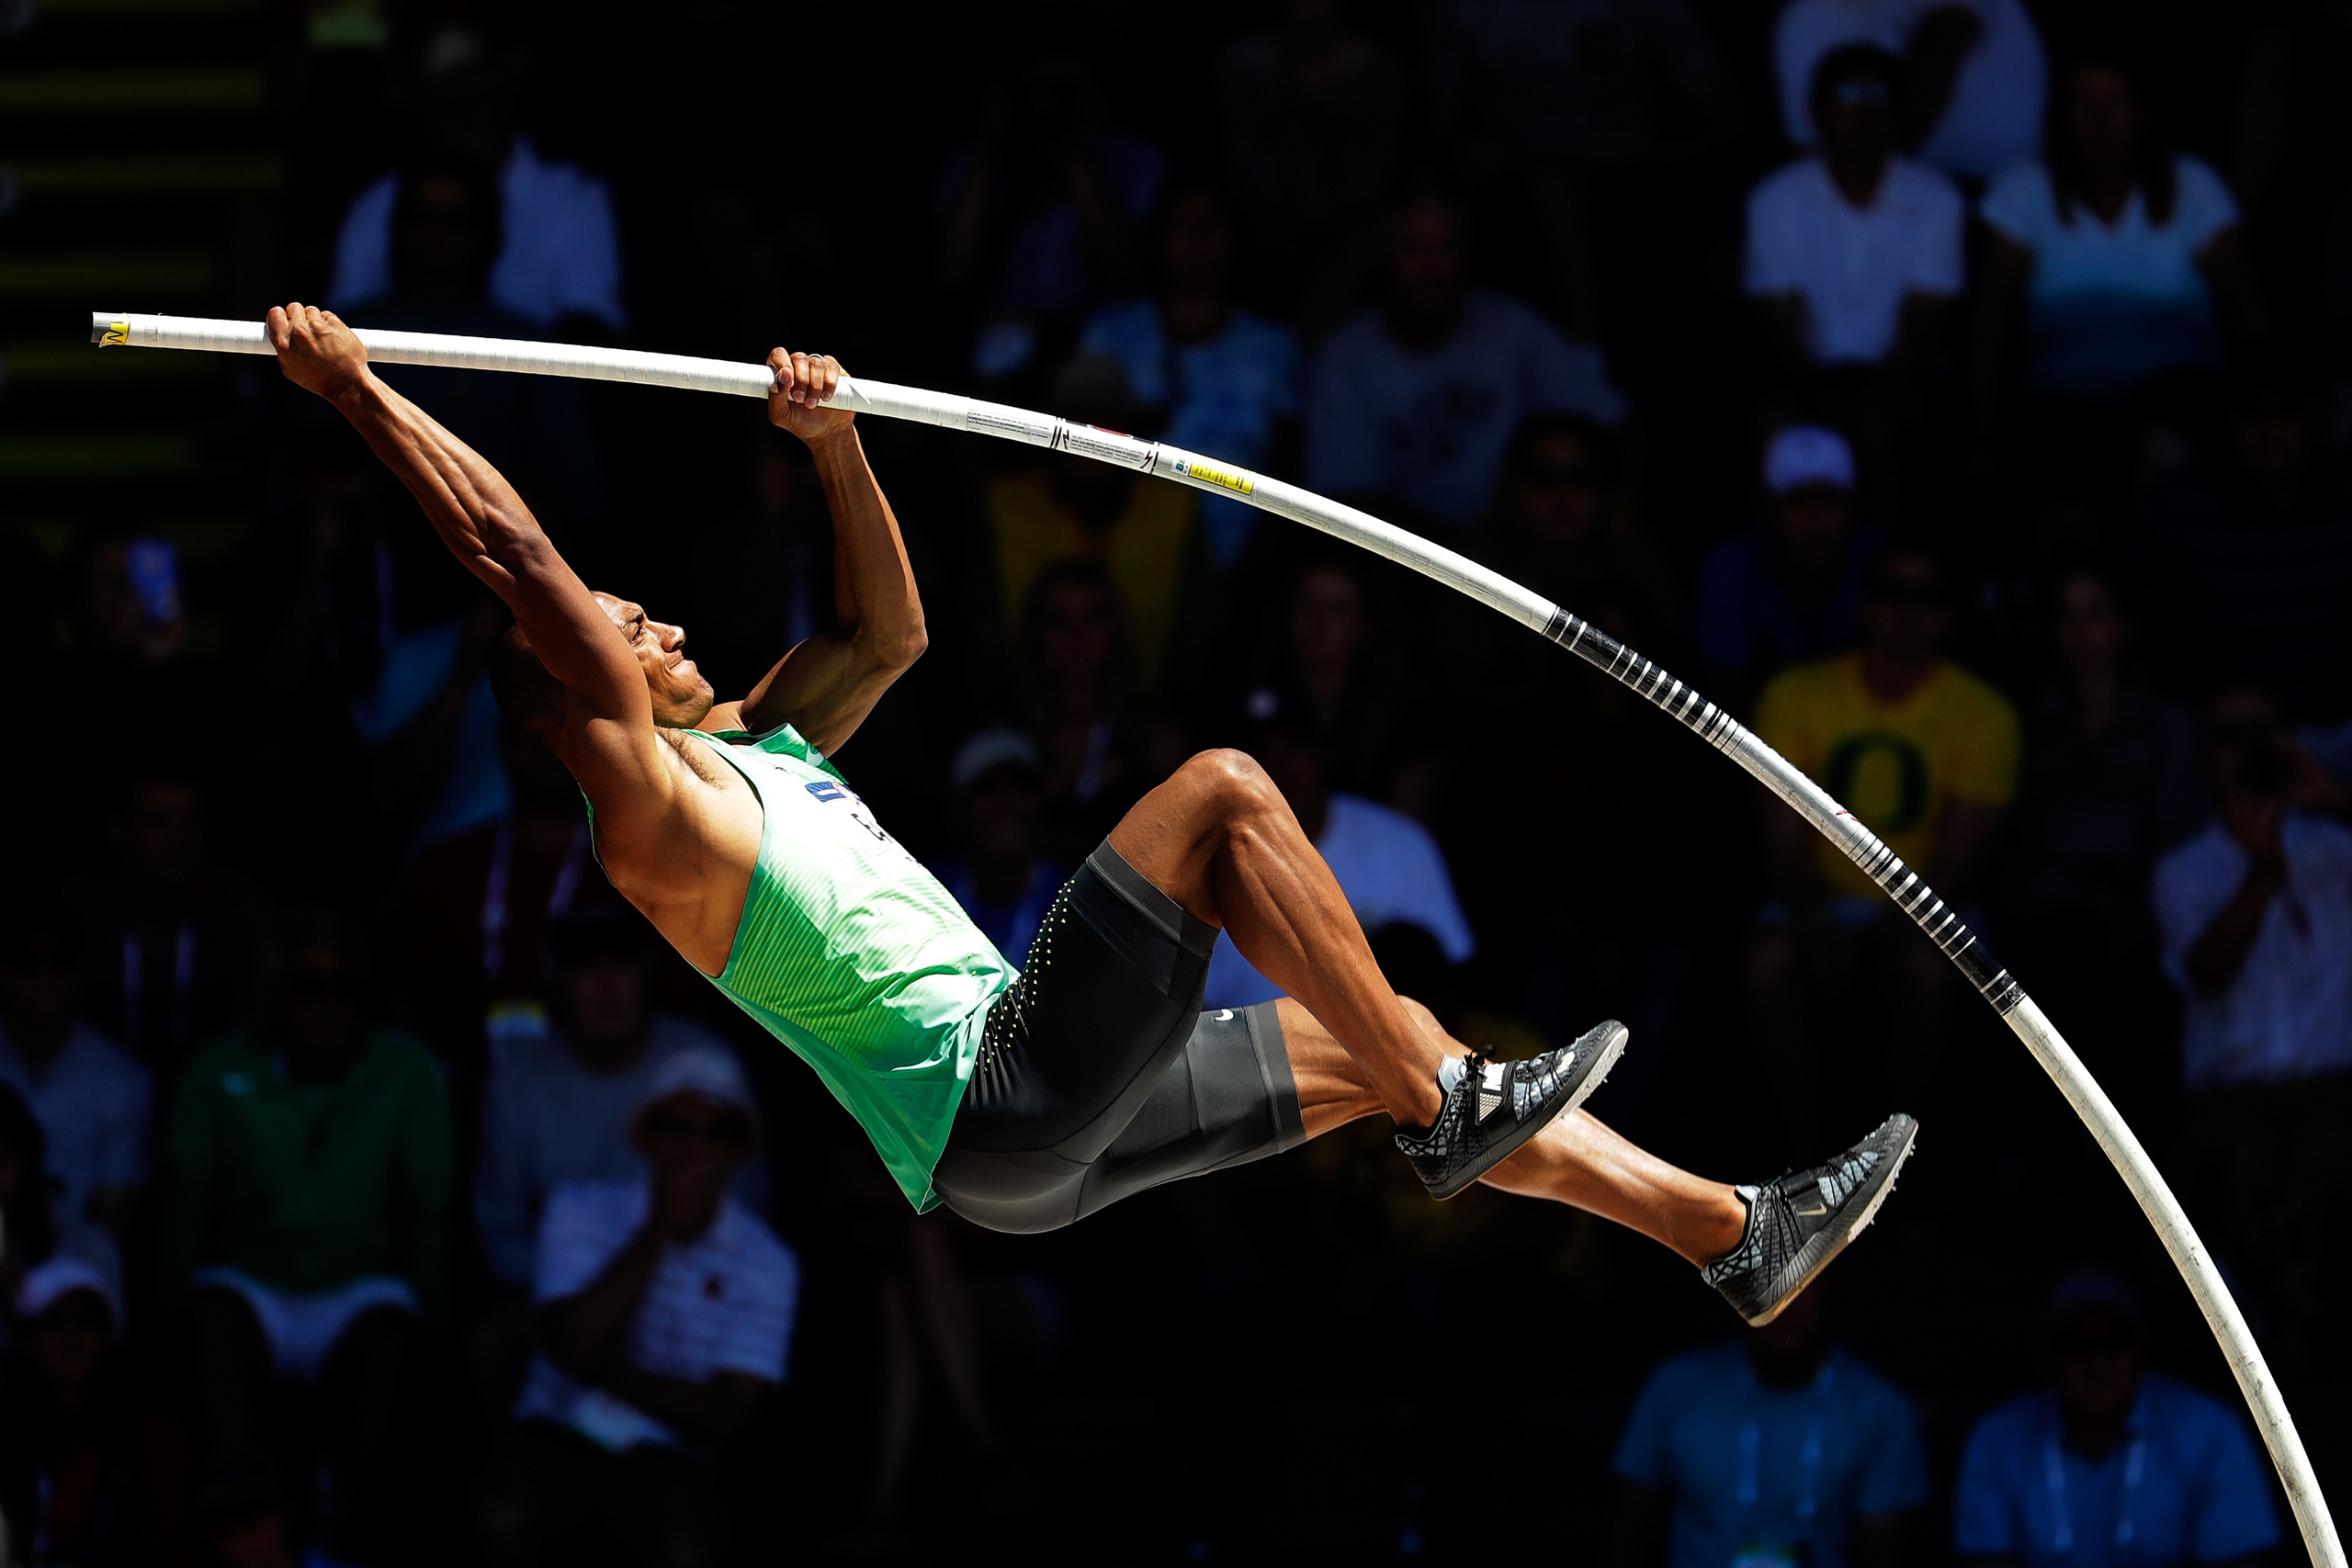 <strong>Ashton Eaton, Track and Field, USA</strong>The winner of the Olympic decathlon has been hailed as the world's greatest athlete ever since King Gustav V of Sweden bestowed the honor on Jim Thorpe at the 1912 Stockholm Games. It isn't mere hyperbole: the decathlon is a grueling two-day test of speed (100-m dash, 110-m hurdles, 400 m), endurance (1,500-m run), agility (long jump, high jump, pole vault) and strength (shot put, discus, javelin).                                   Over the past four years, no one has been better at it than Oregon native Ashton Eaton, 28. Eaton, who's married to Canadian heptathlon contender Brianne Theisen-Eaton, won gold in London and hasn't lost a major competition since. At the 2015 world championships, Eaton broke his own world record. Should he win in Rio, he'd become the first back-to-back Olympic decathlon champ in 32 years. World's greatest athlete? Maybe that should be of all time. —S.G.